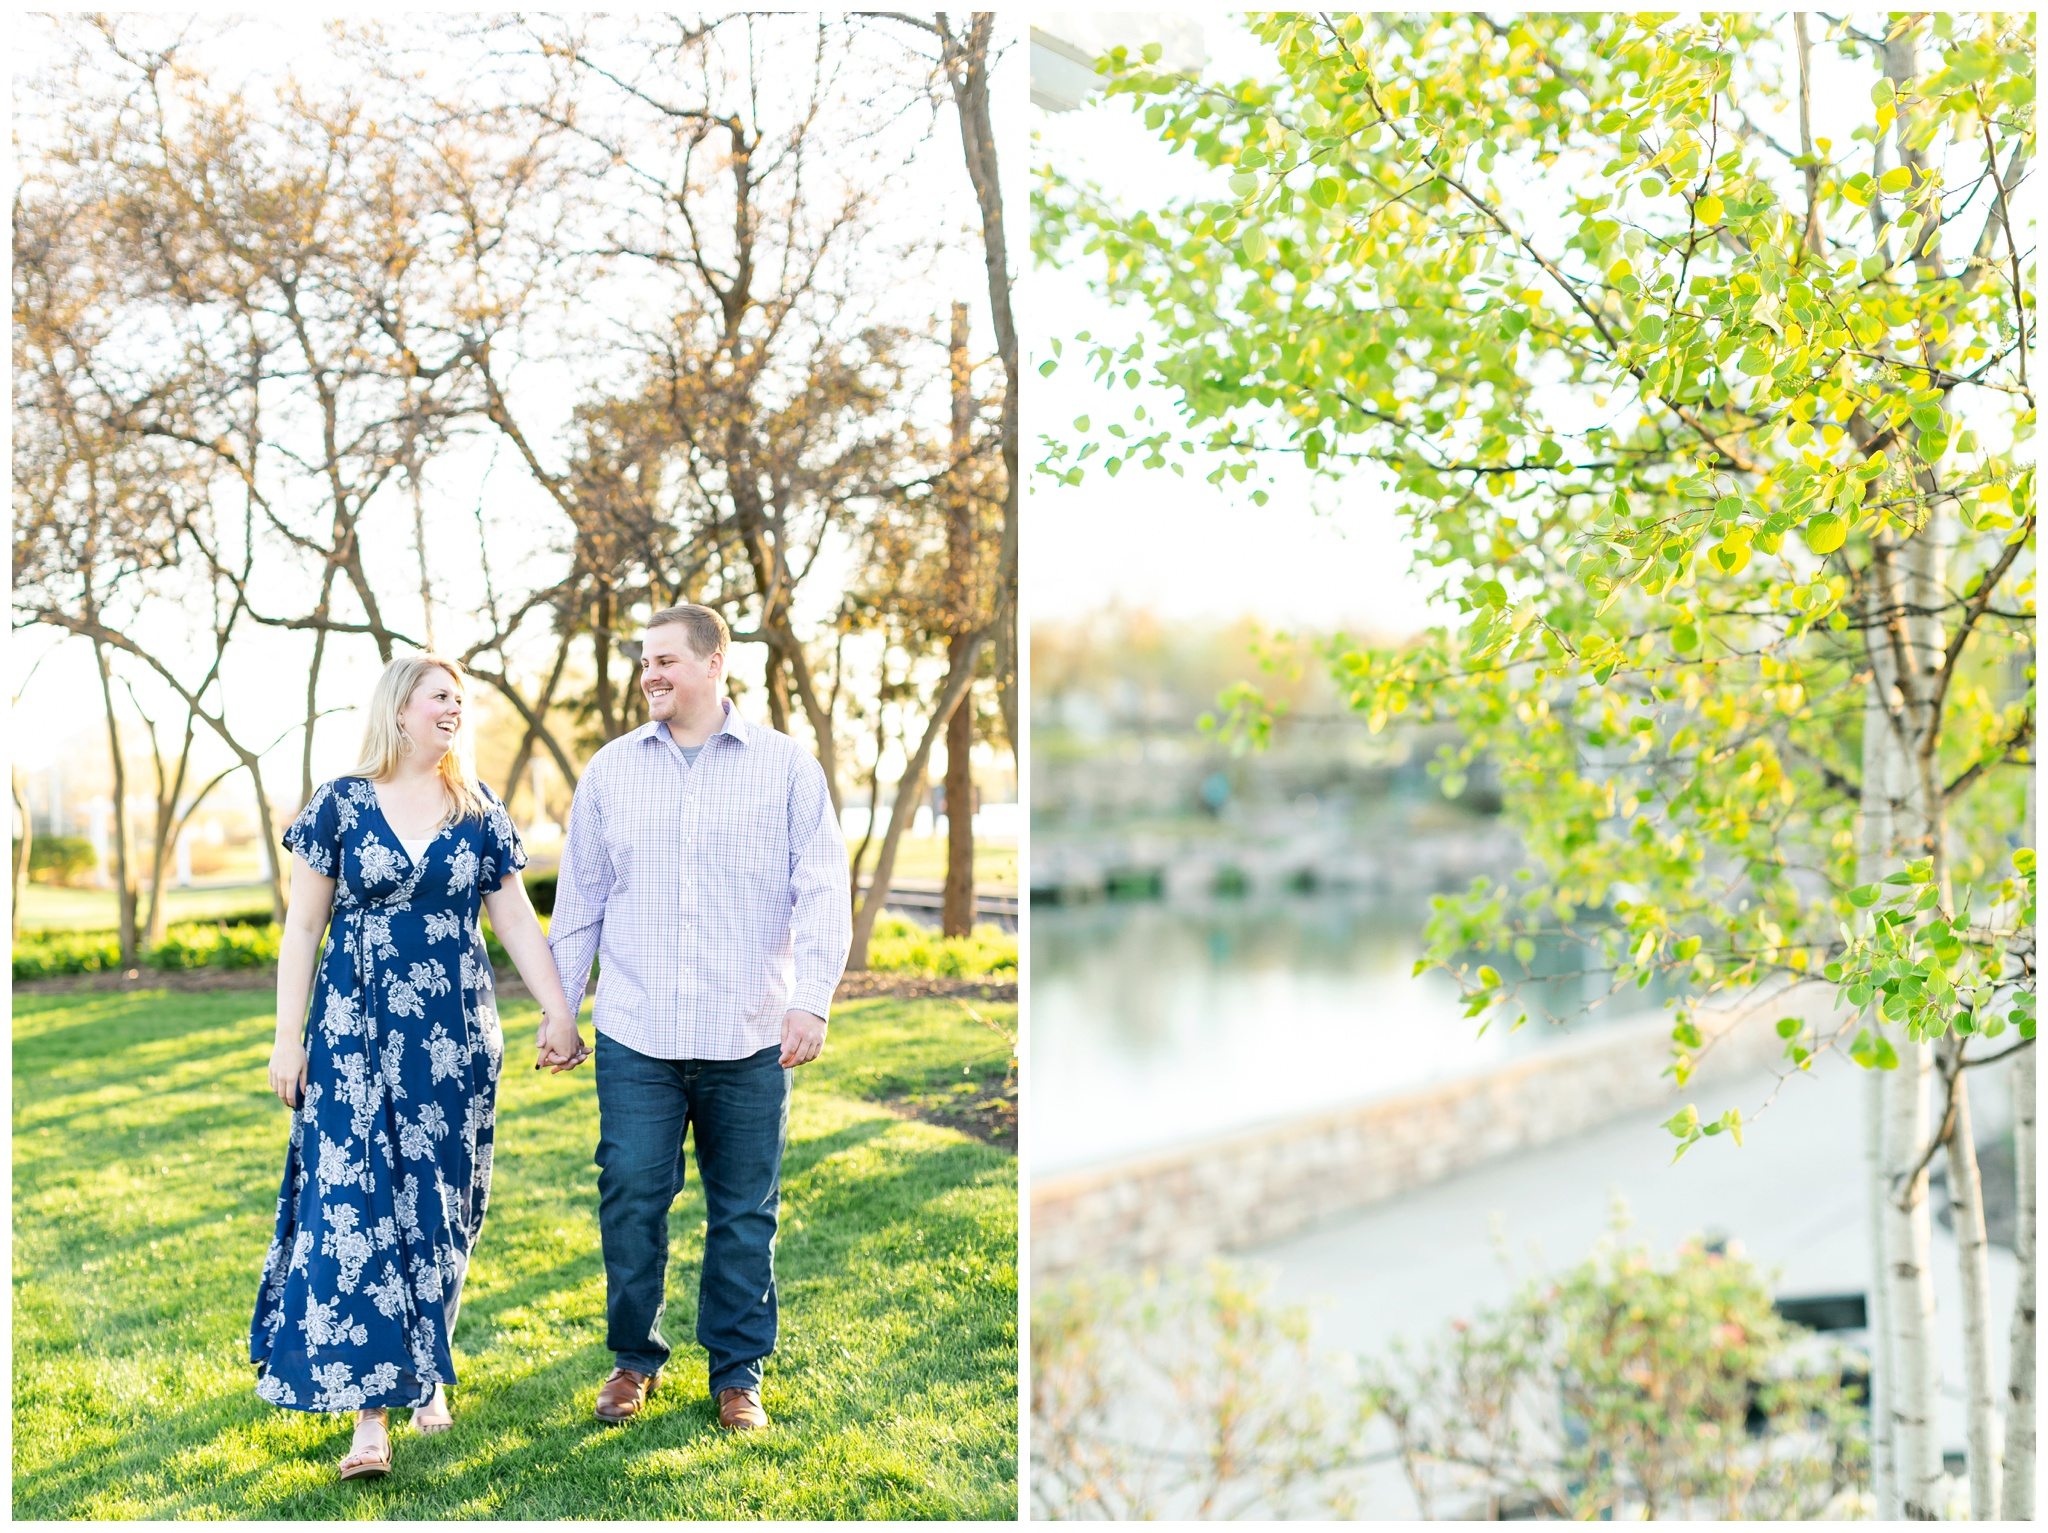 nicholas_conservatory_engagement_session_rockford_illinois_caynay_photo_2994.jpg